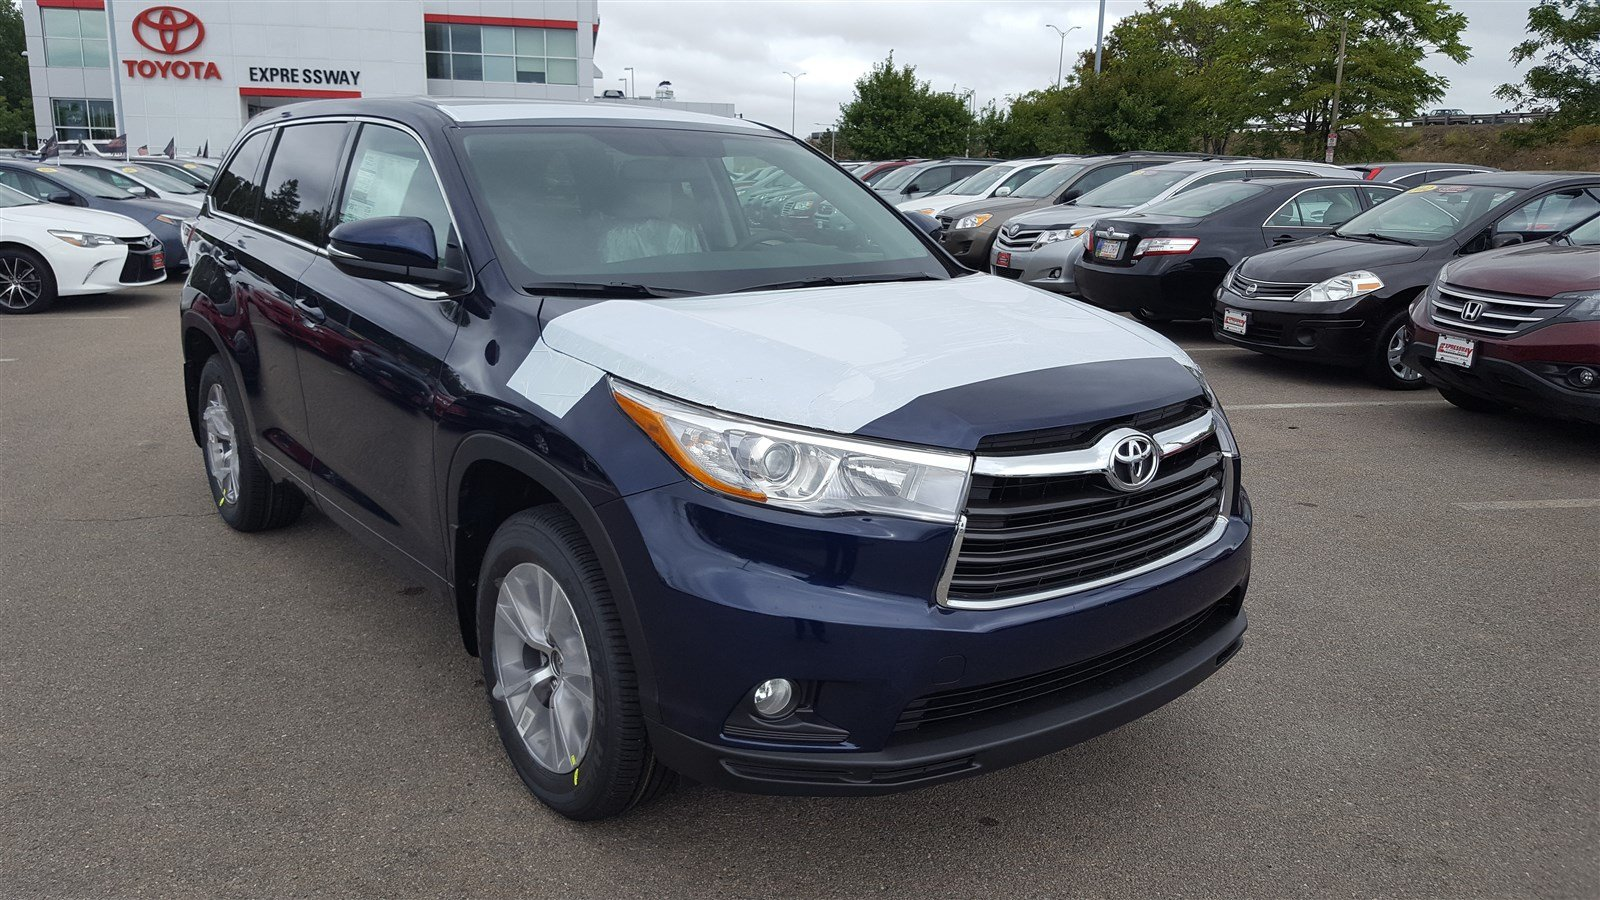 new 2016 toyota highlander le plus sport utility in boston 16907 expressway toyota. Black Bedroom Furniture Sets. Home Design Ideas